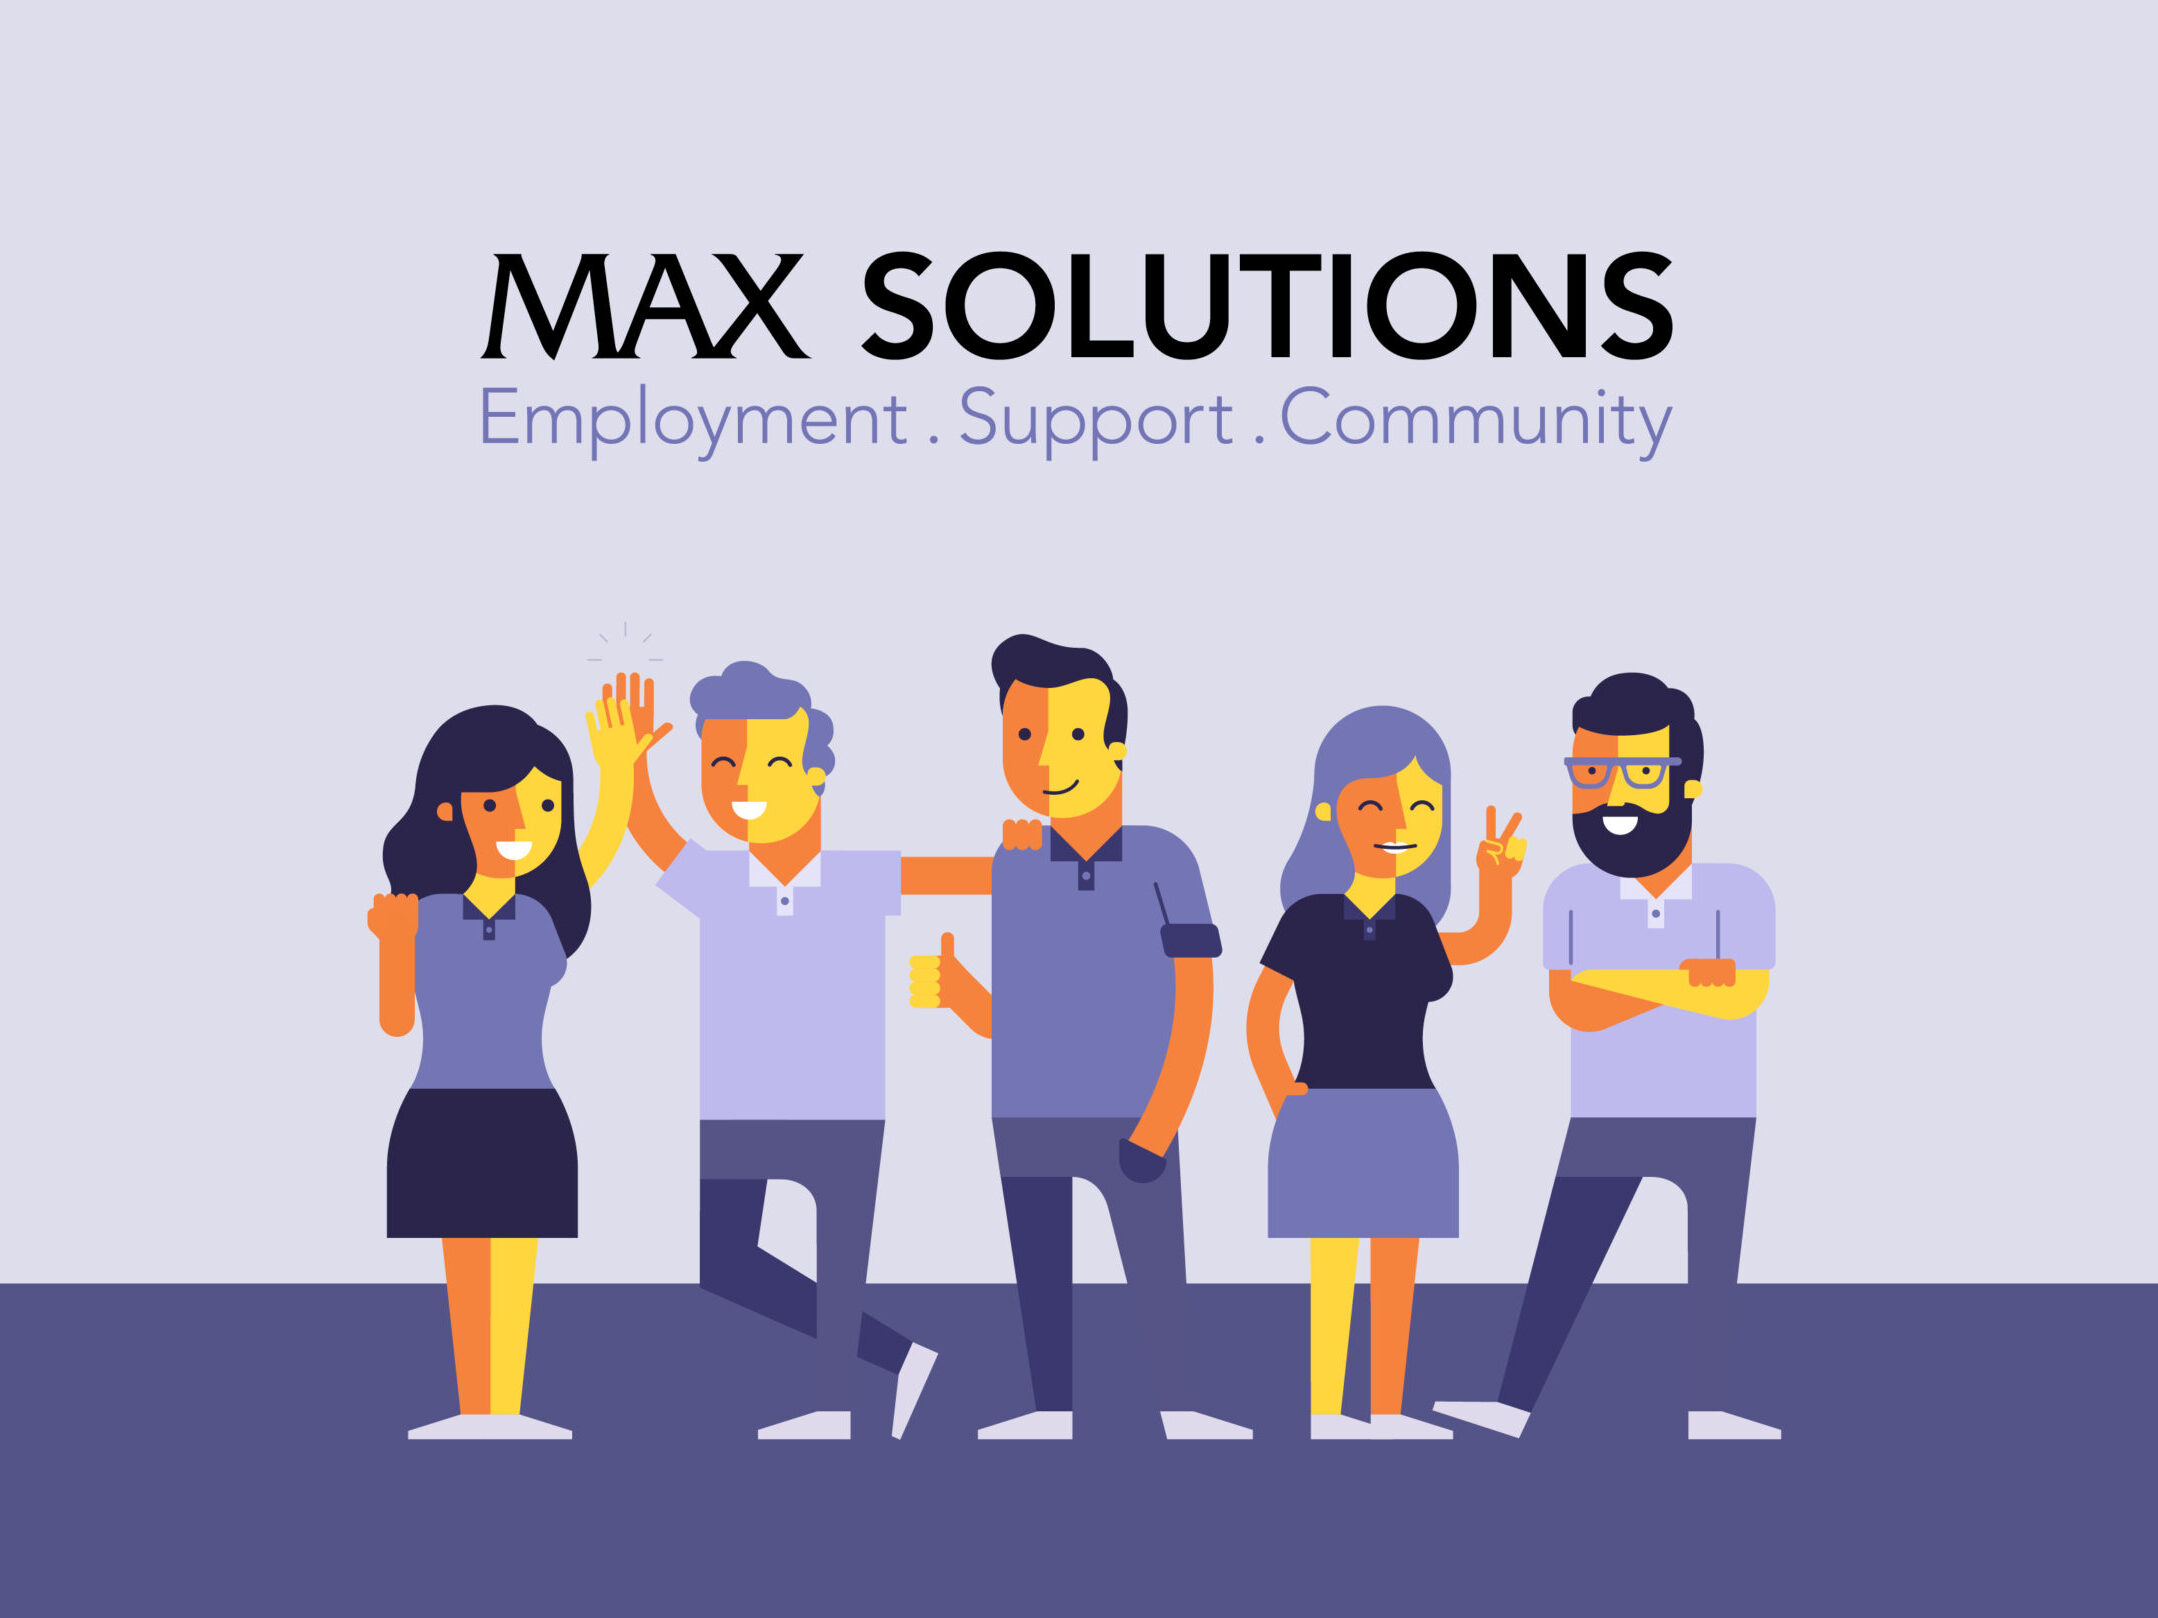 Max Solutions logo with five people standing together